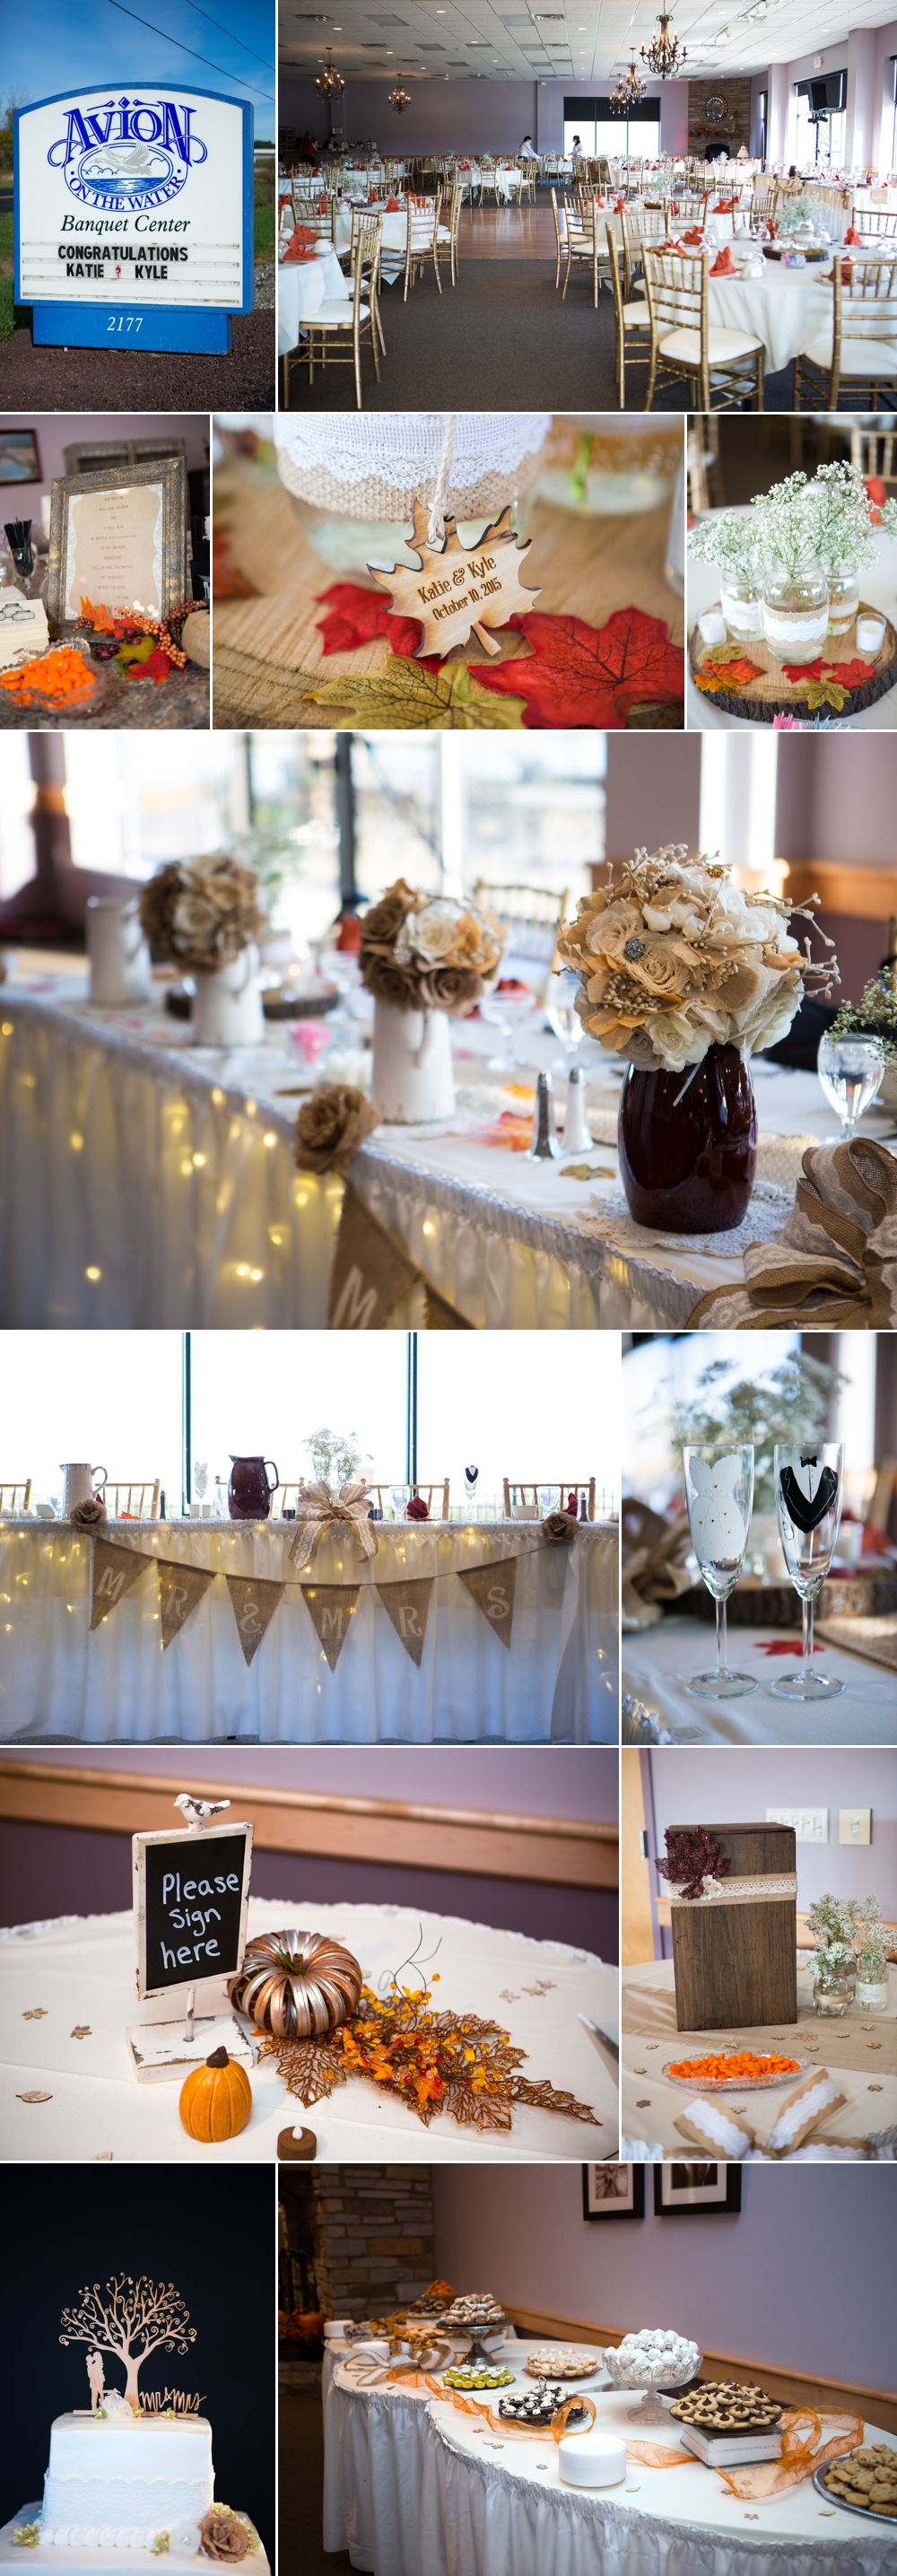 Citino Canfield Wedding Blog 11